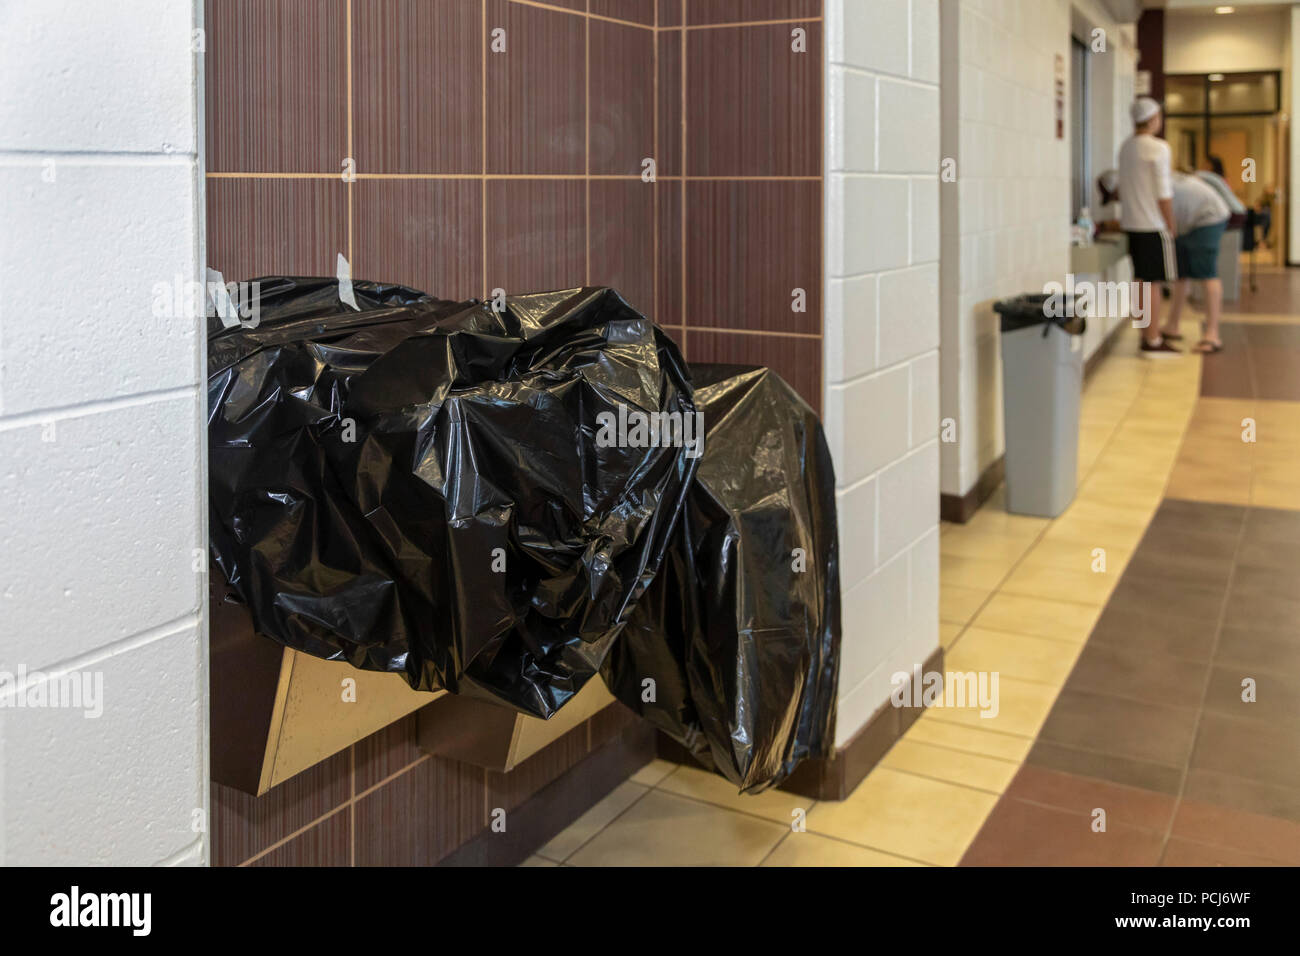 Parchment, Michigan – Water fountains at Parchment High